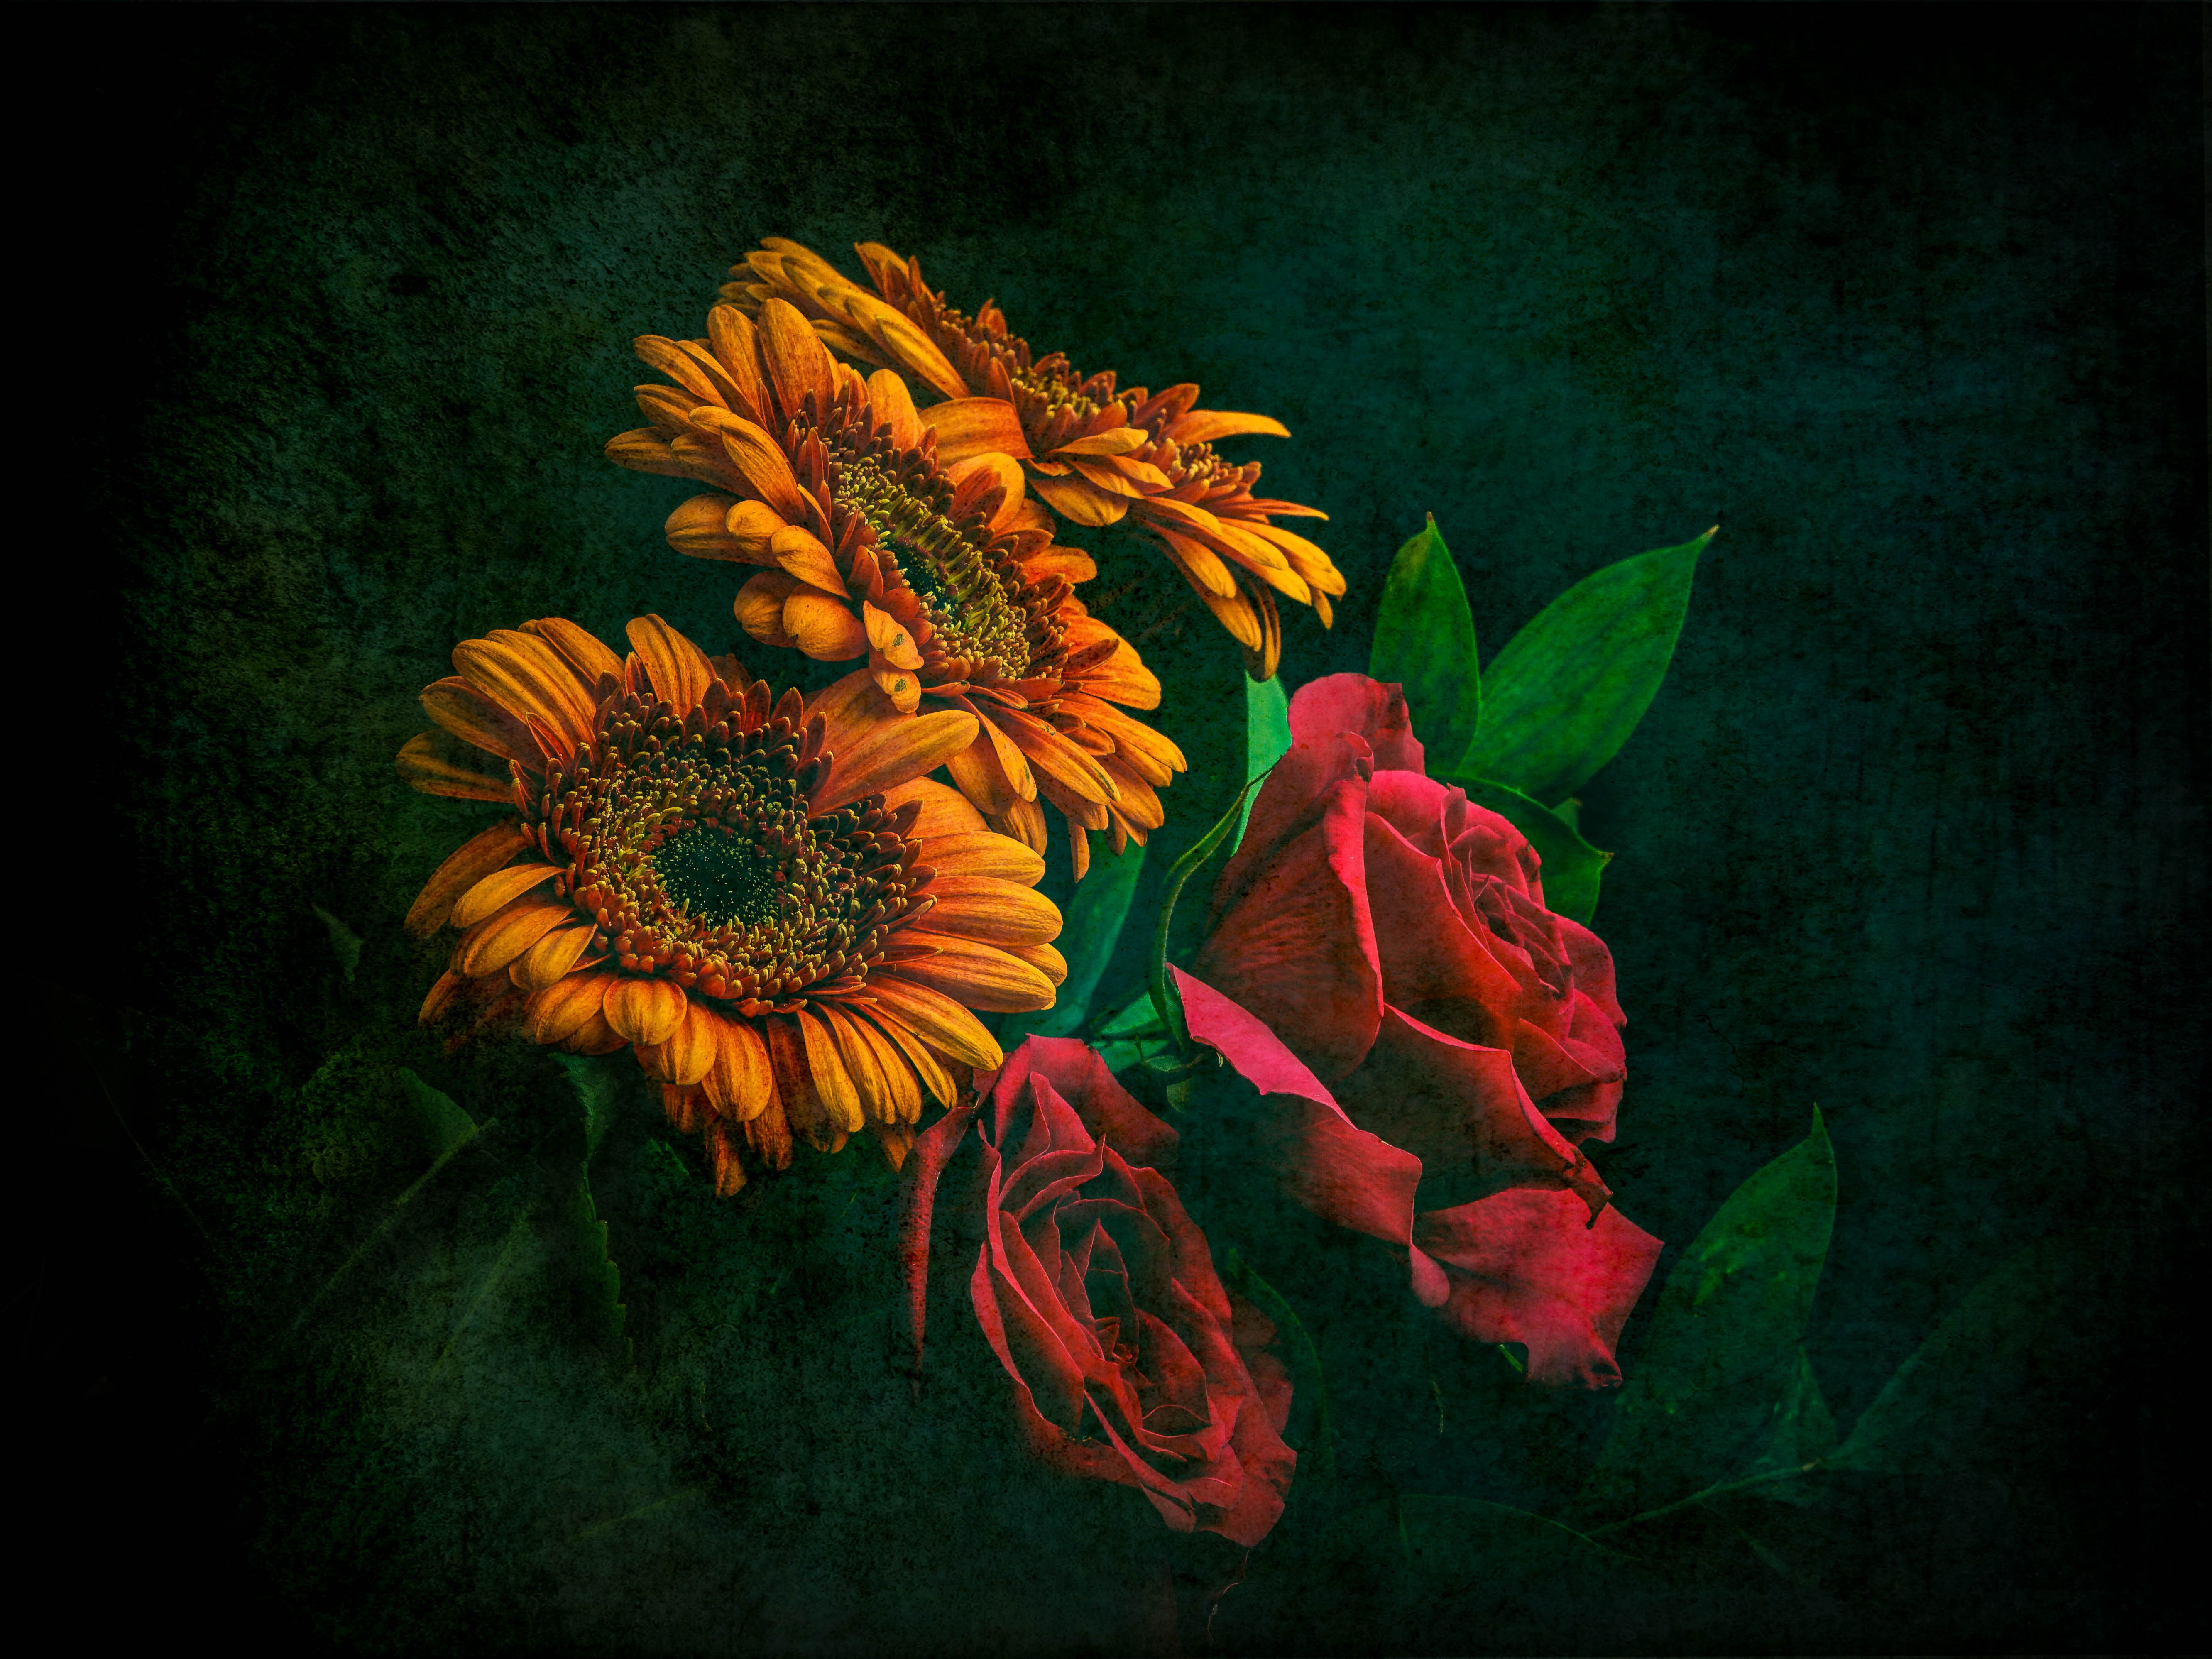 Sunflower And Roses Wallpapers Top Free Sunflower And Roses Backgrounds Wallpaperaccess